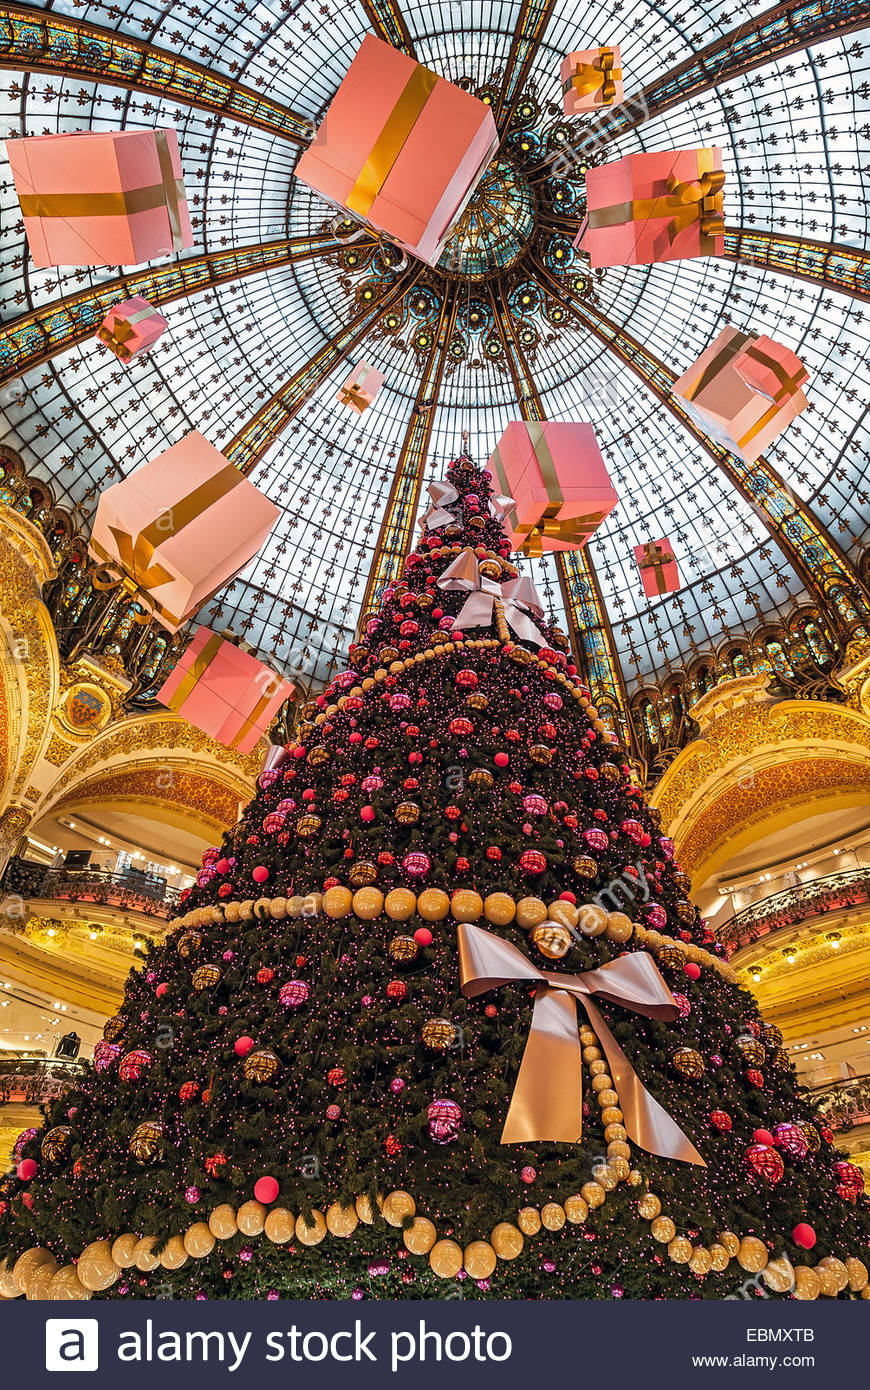 galeries-lafayette-christmas-tree-paris-